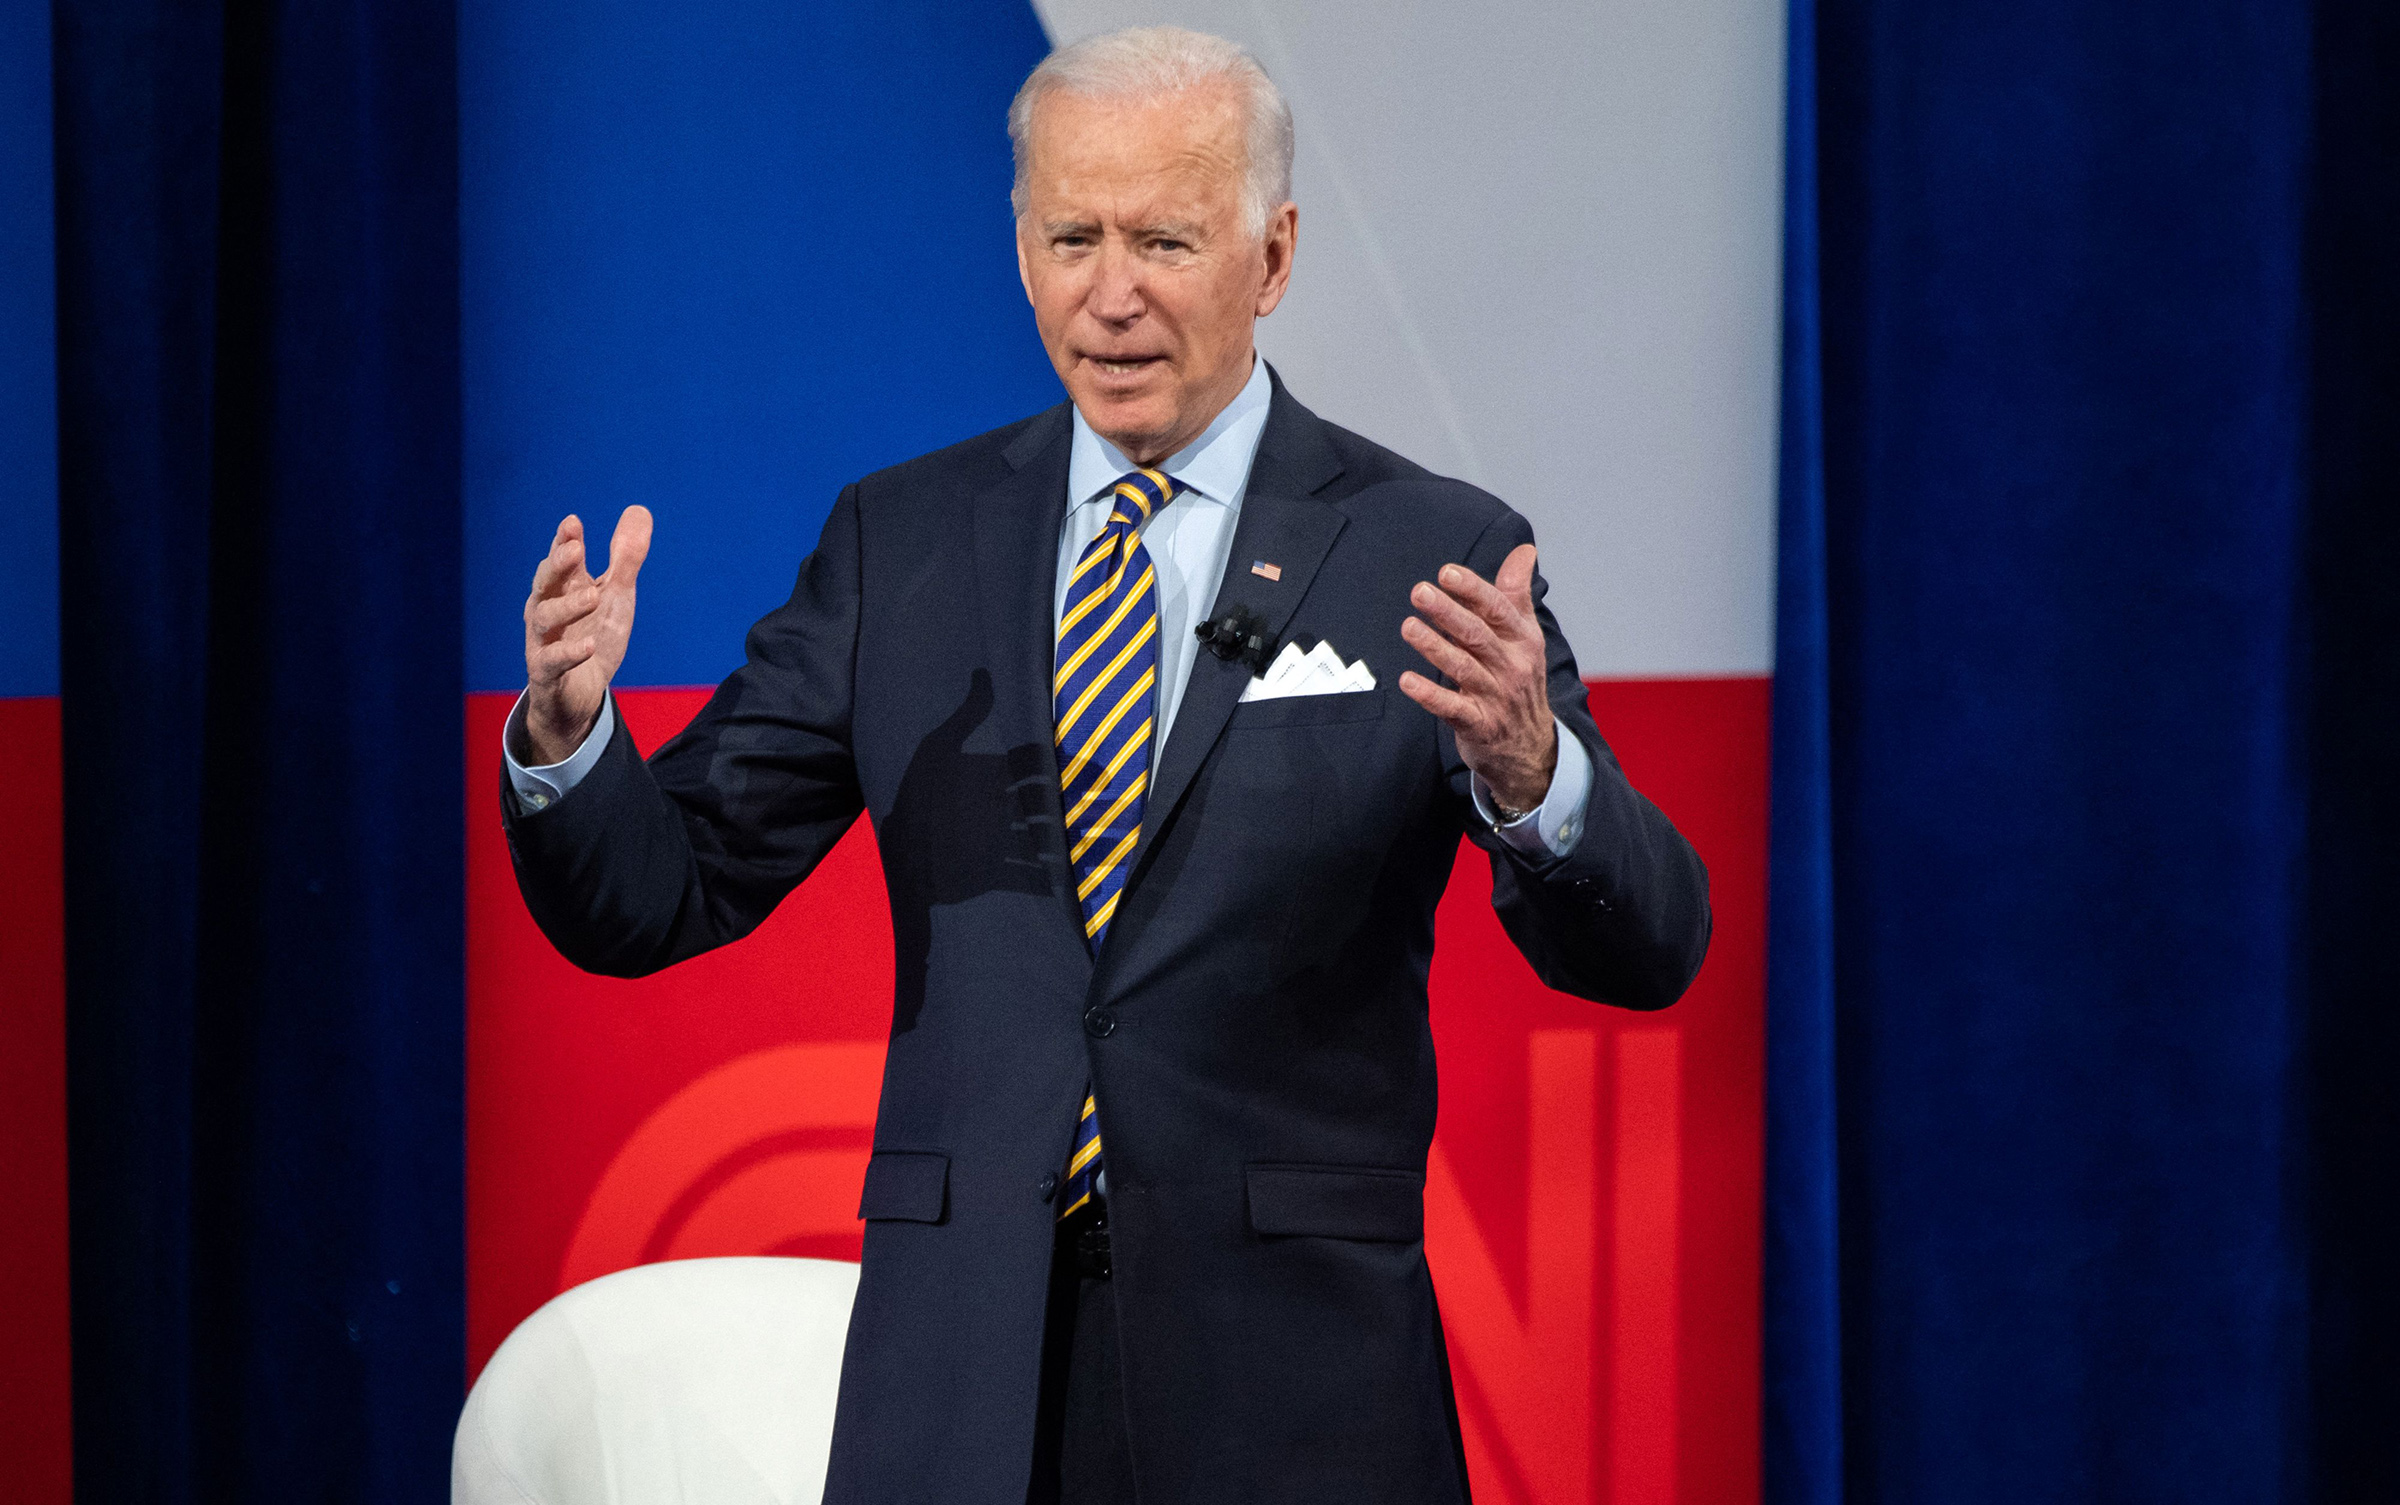 President Joe Biden participates in a CNN town hall at the Pabst Theater in Milwaukee, Wis., on Feb. 16, 2021.